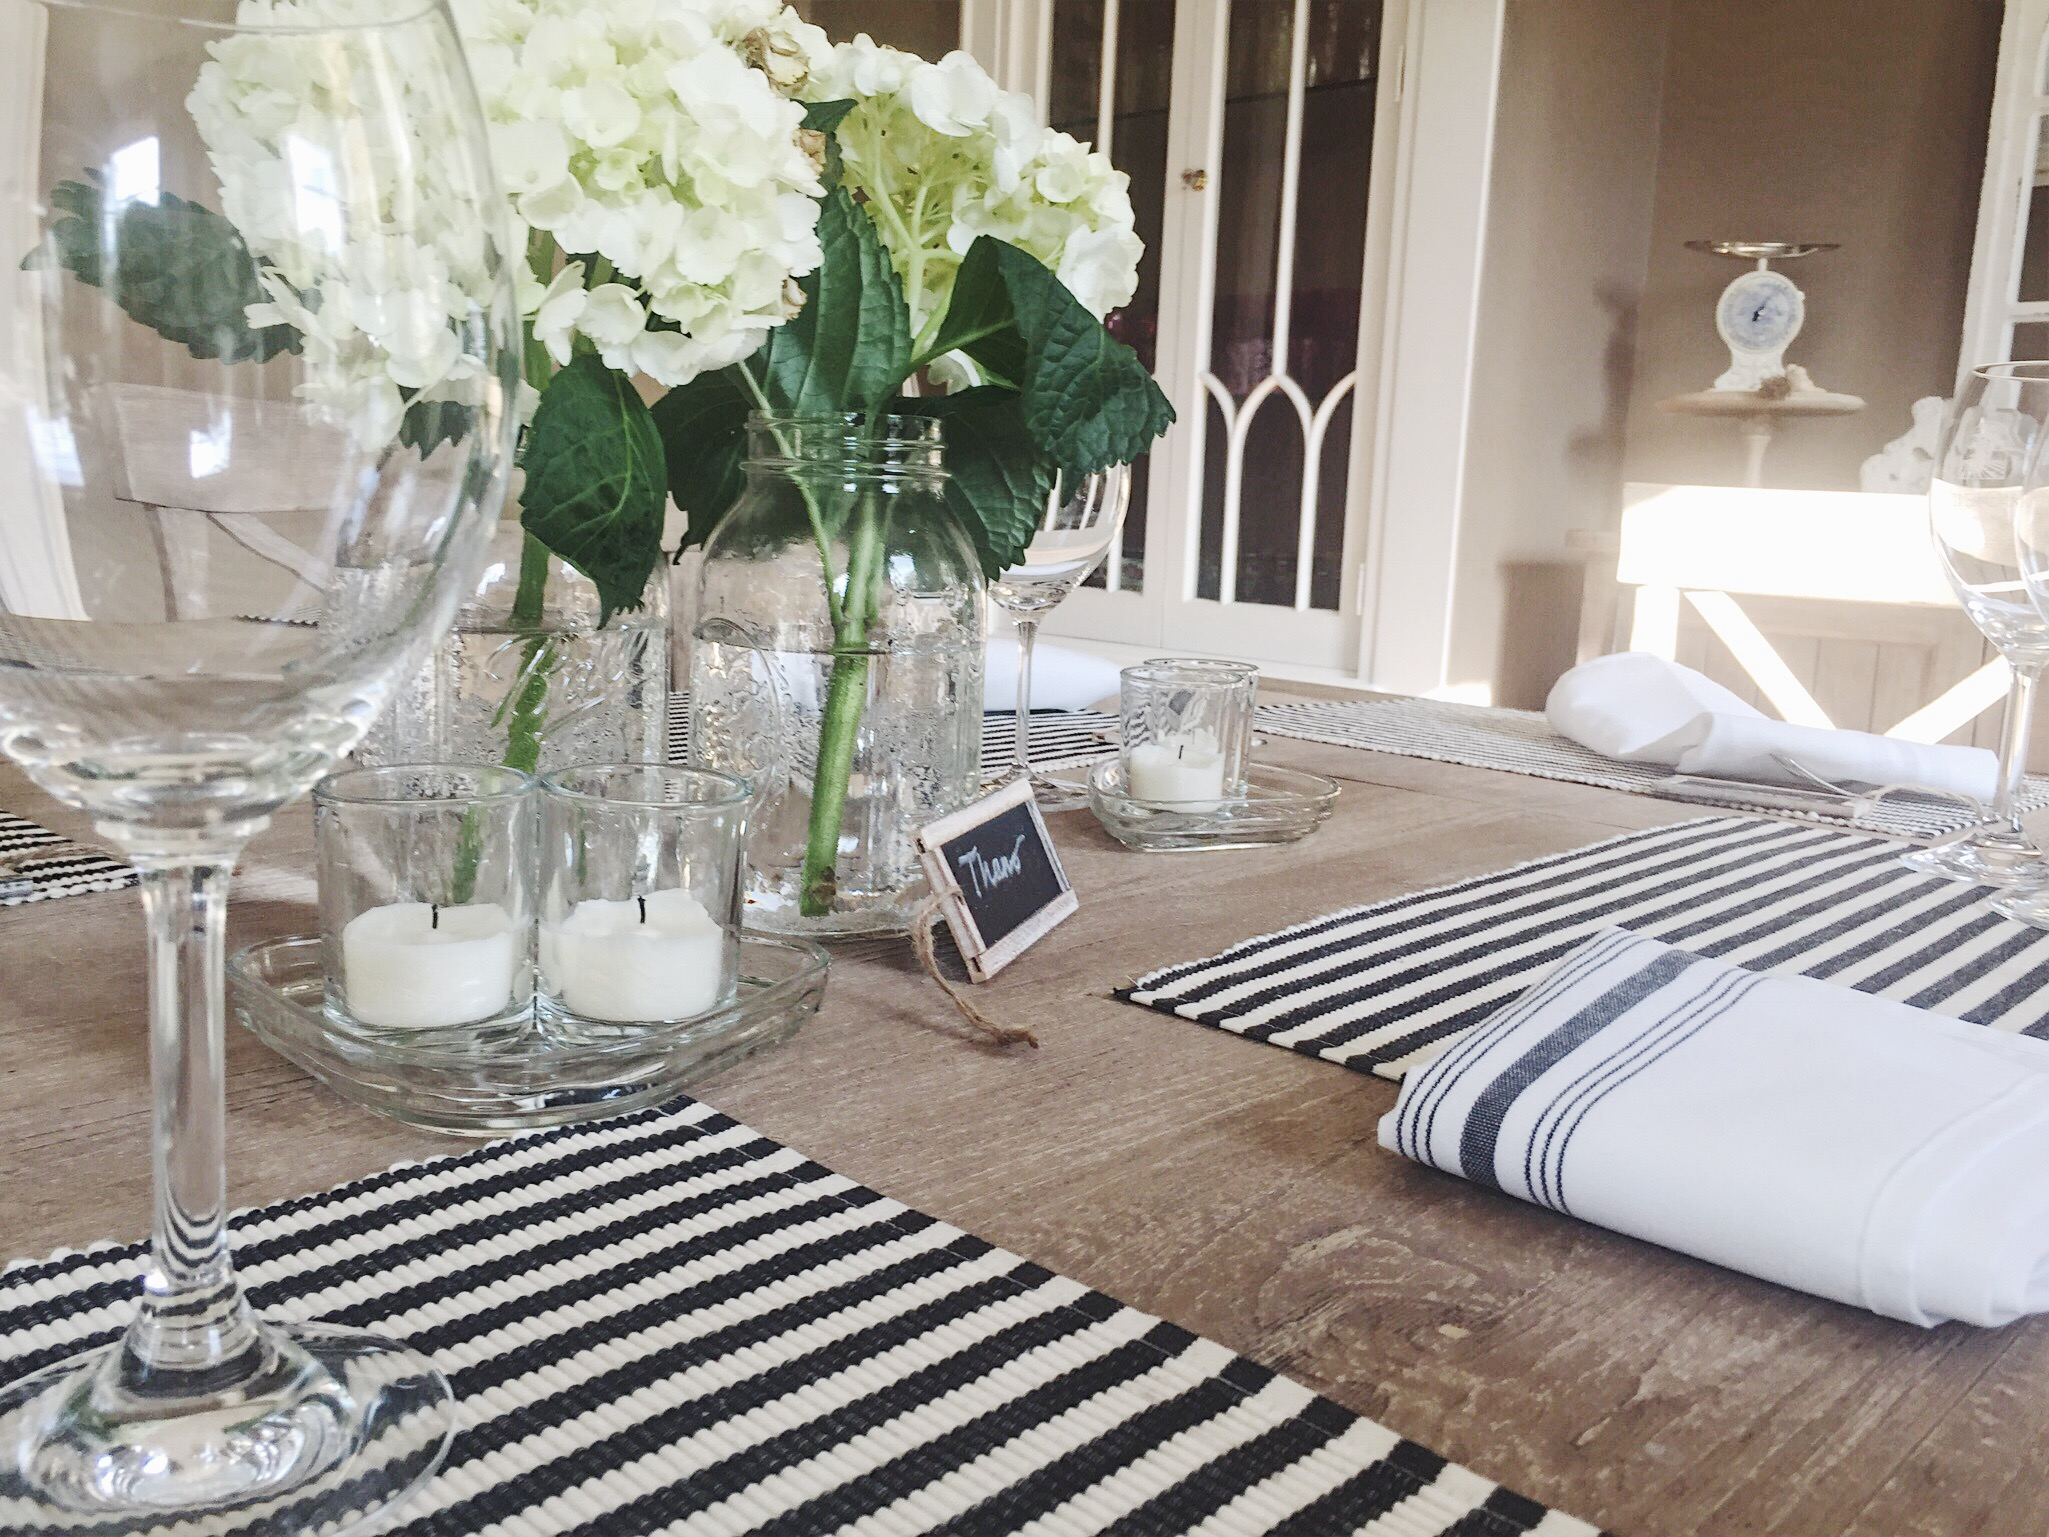 chalkboard place cards on dinner table